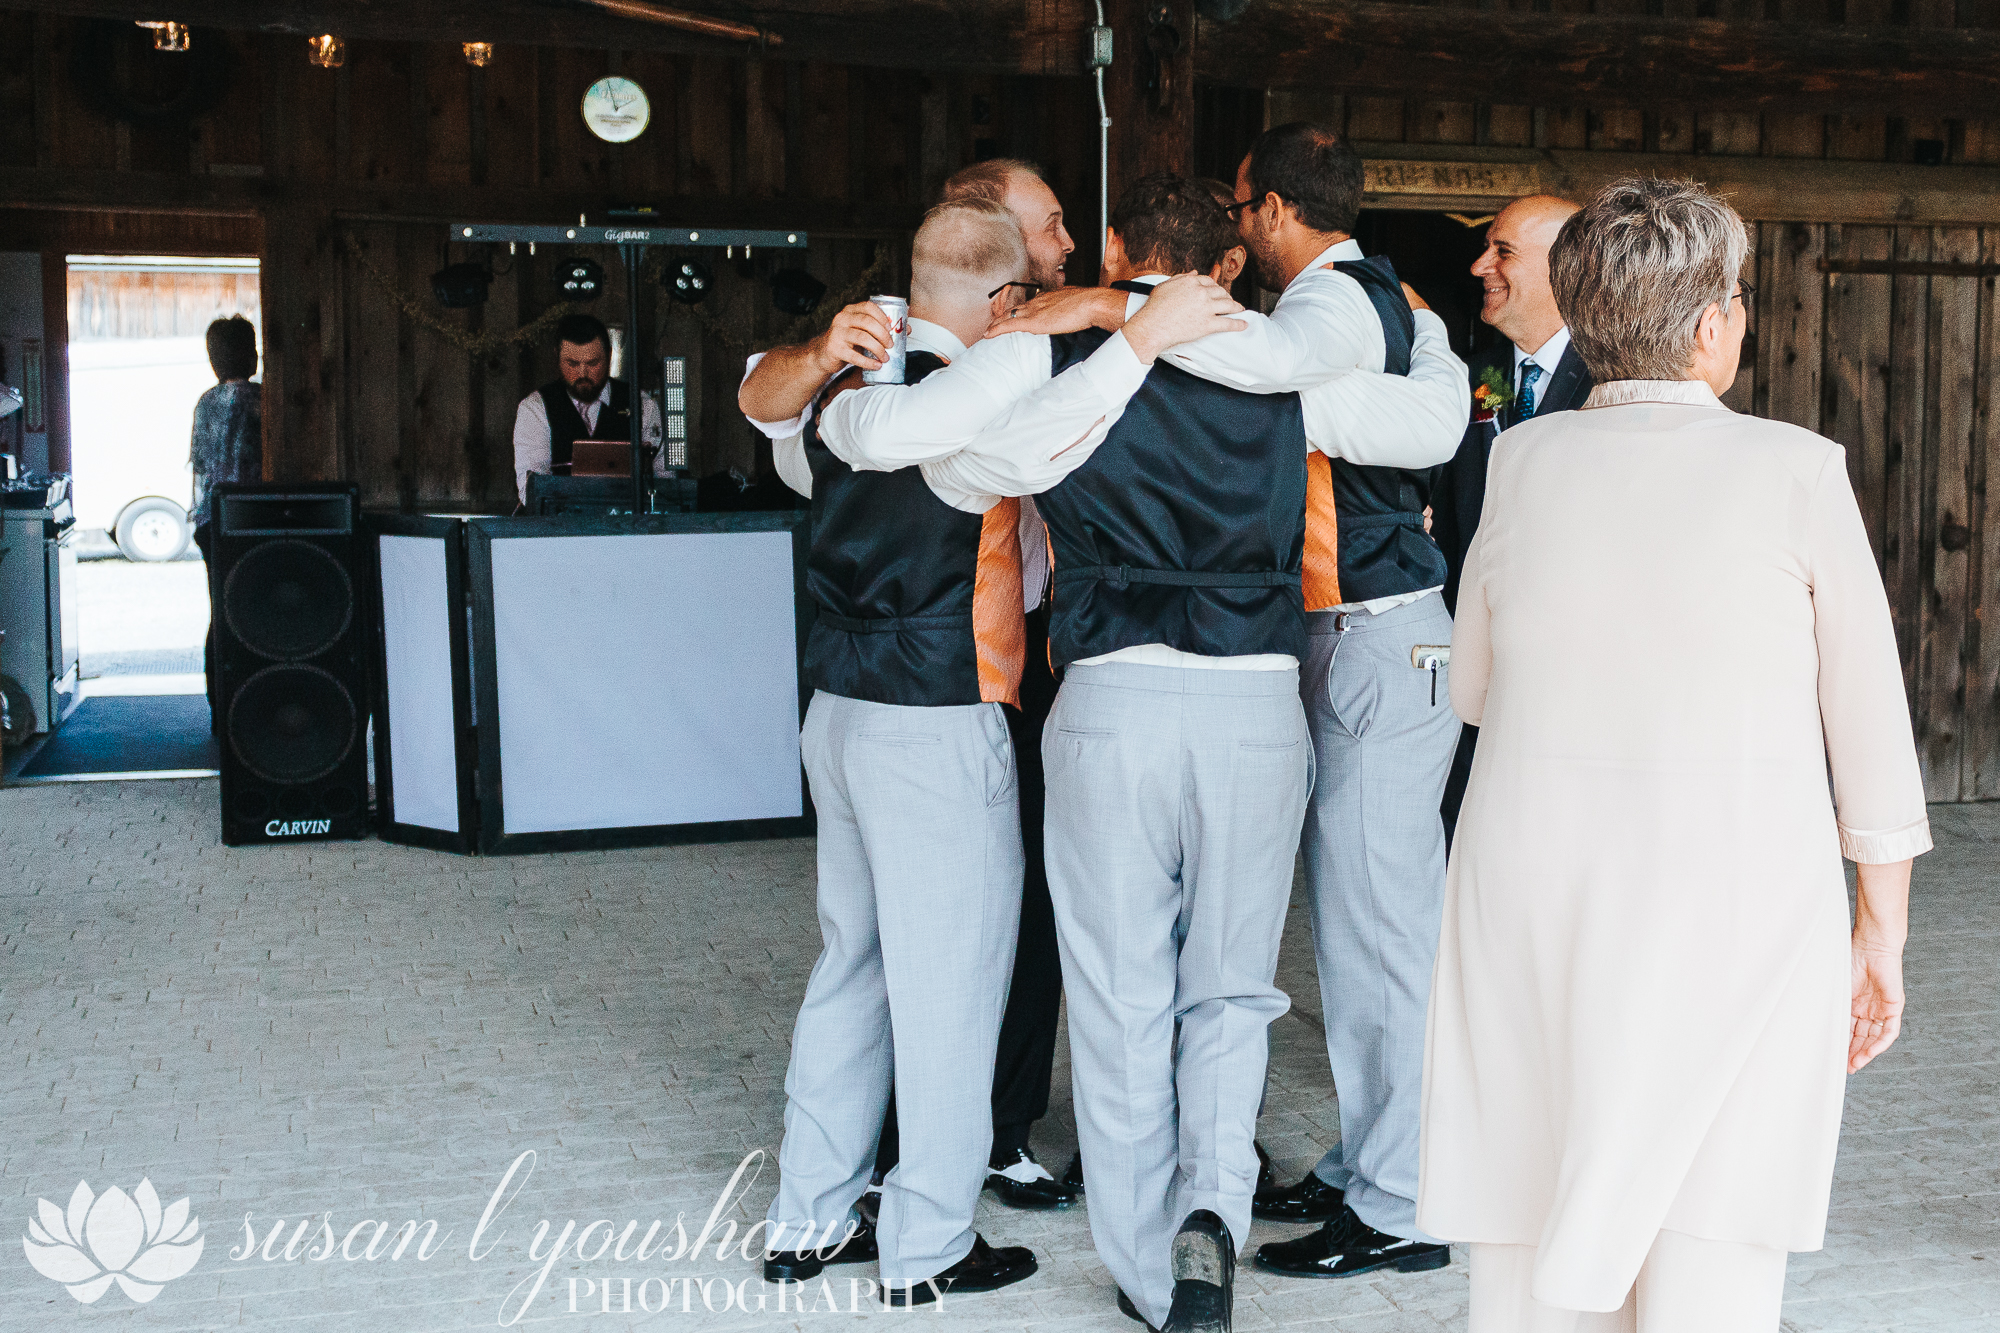 BLOG Kelly and DJ Roberts 08-25-2018 SLY Photography LLC-10.jpg